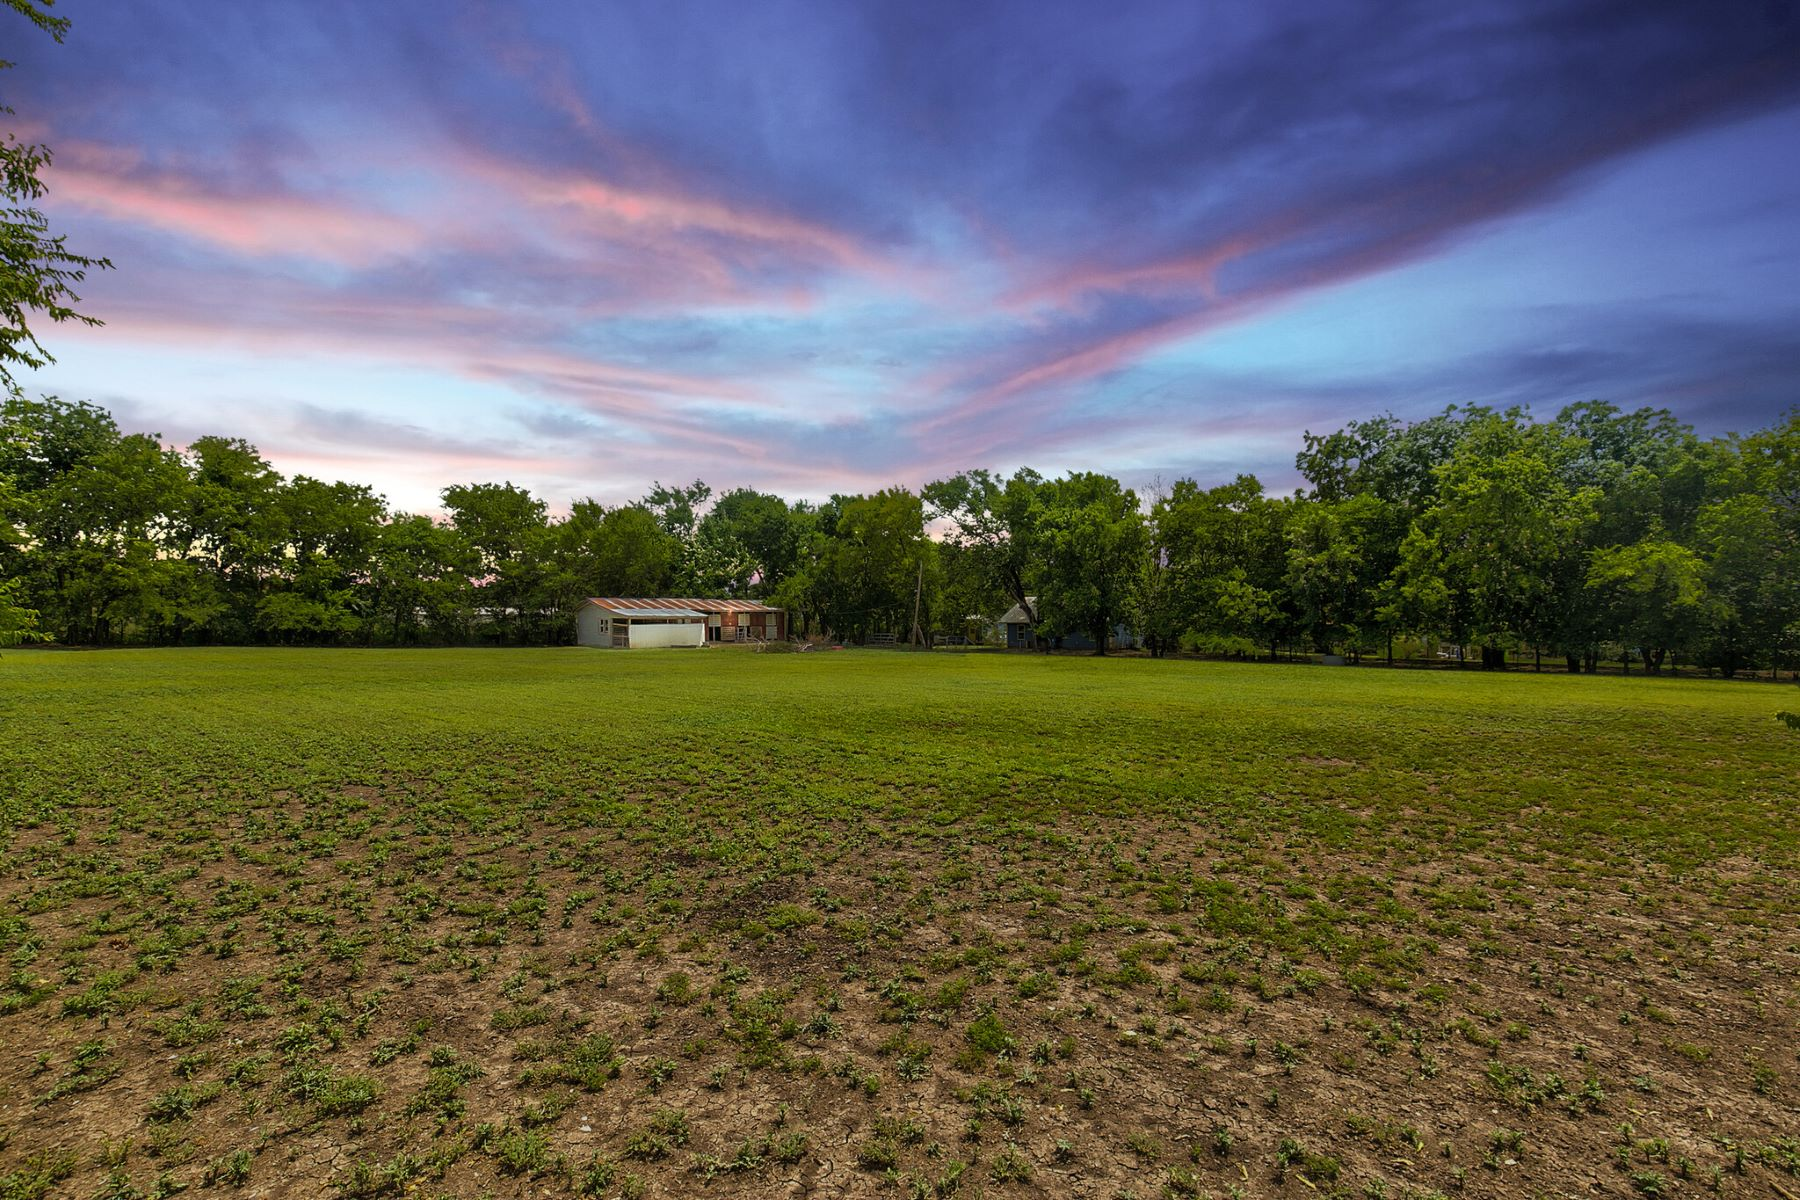 Single Family Homes for Sale at 340 Horseshoe Trail, Aledo, TX, 76008 340 Horseshoe Trail Aledo, Texas 76008 United States